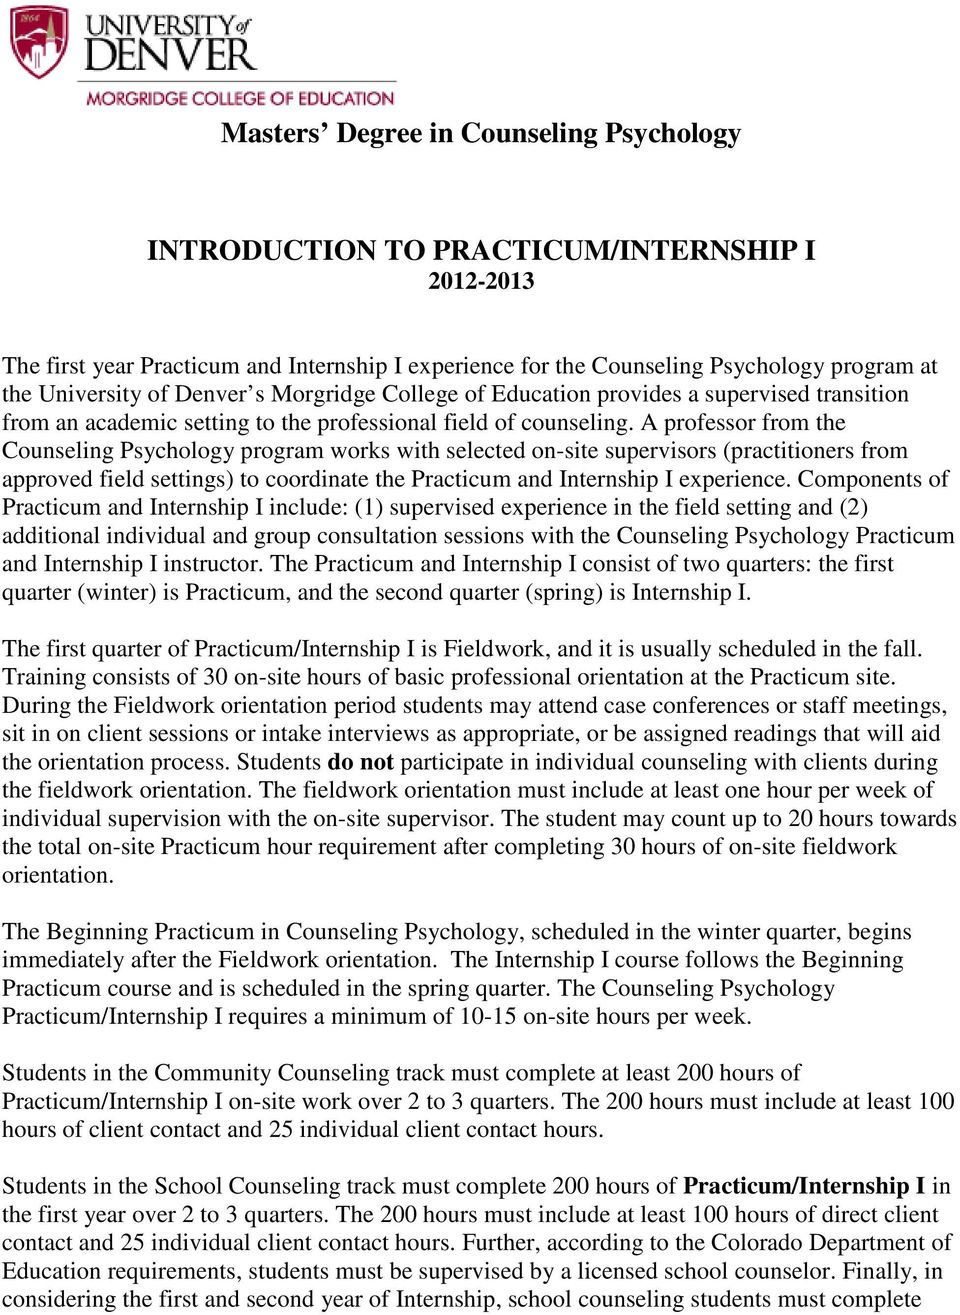 A professor from the Counseling Psychology program works with selected on-site supervisors (practitioners from approved field settings) to coordinate the Practicum and Internship I experience.